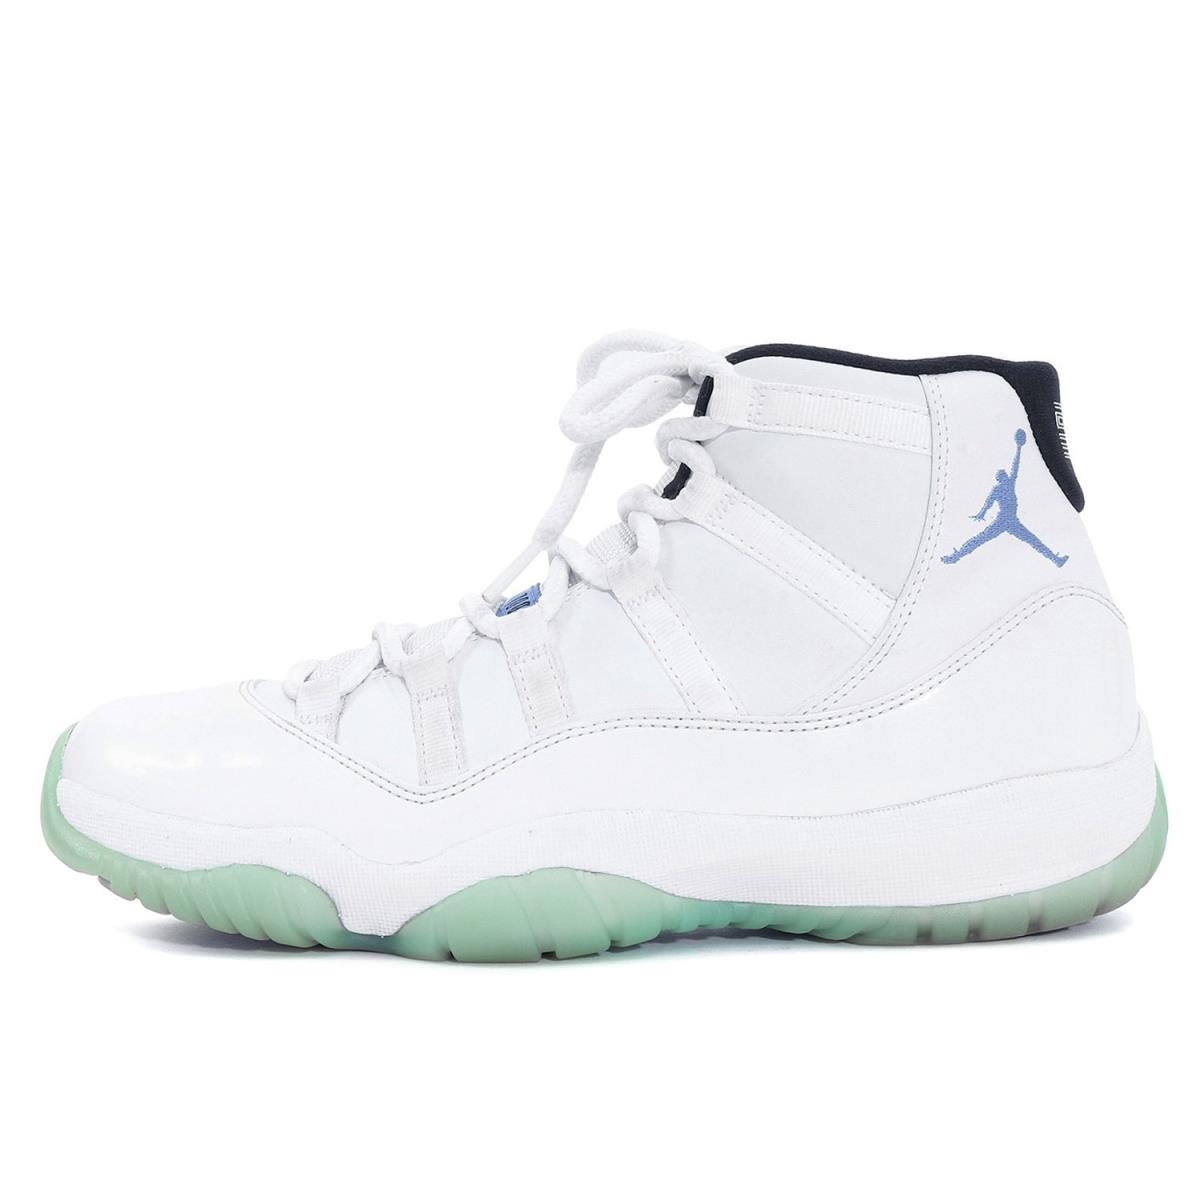 BEEGLE by Boo-Bee  NIKE (Nike) AIR JORDAN 11 RETRO LEGEND BLUE ... cfa2403b6a56